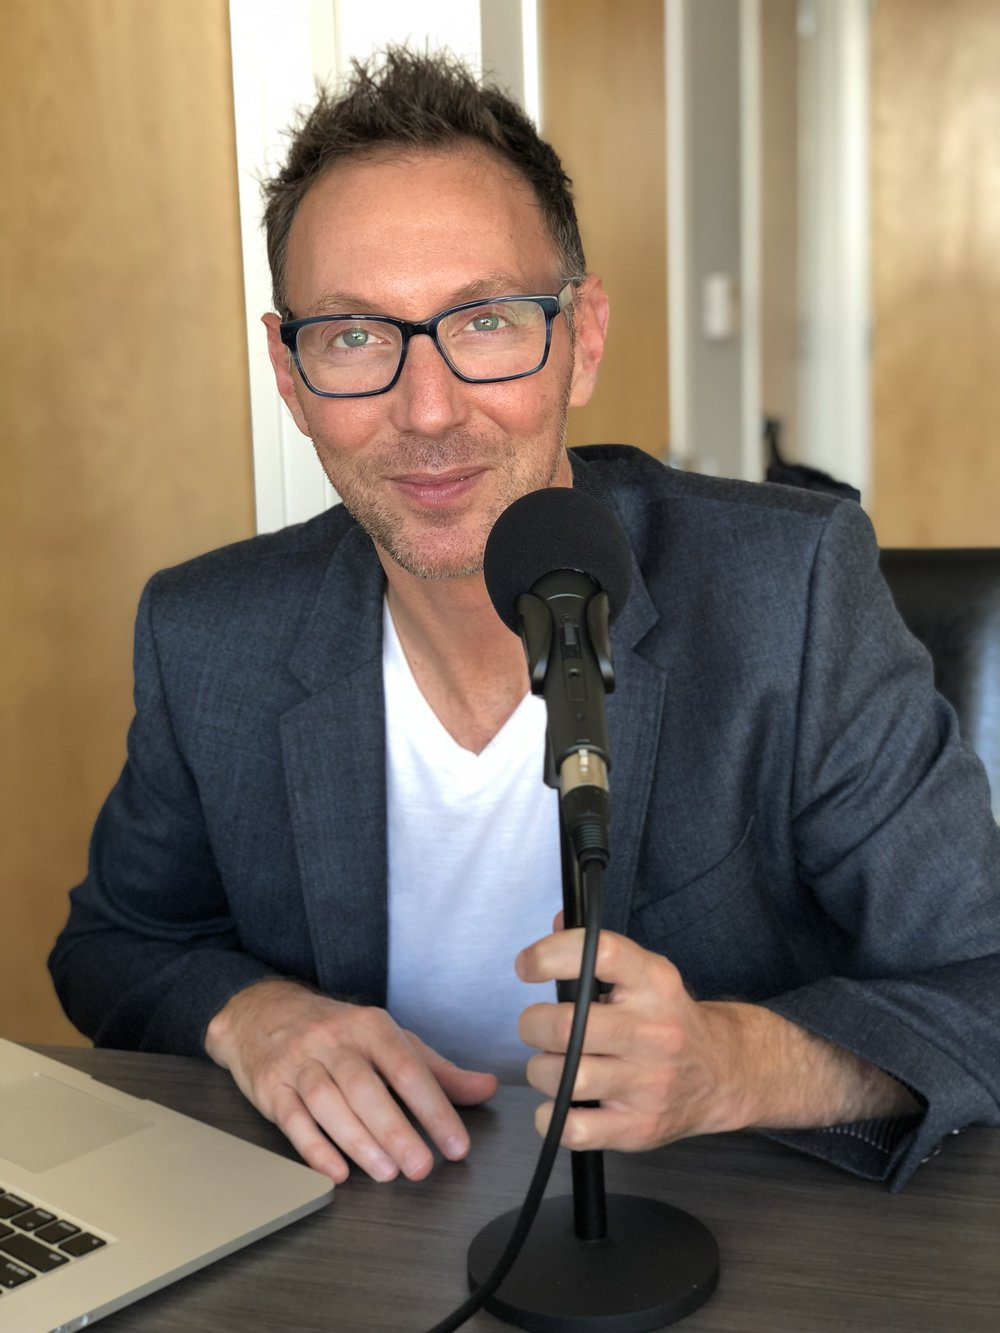 Scott Rose in 2019, recording a podcast on the keto lifestyle.